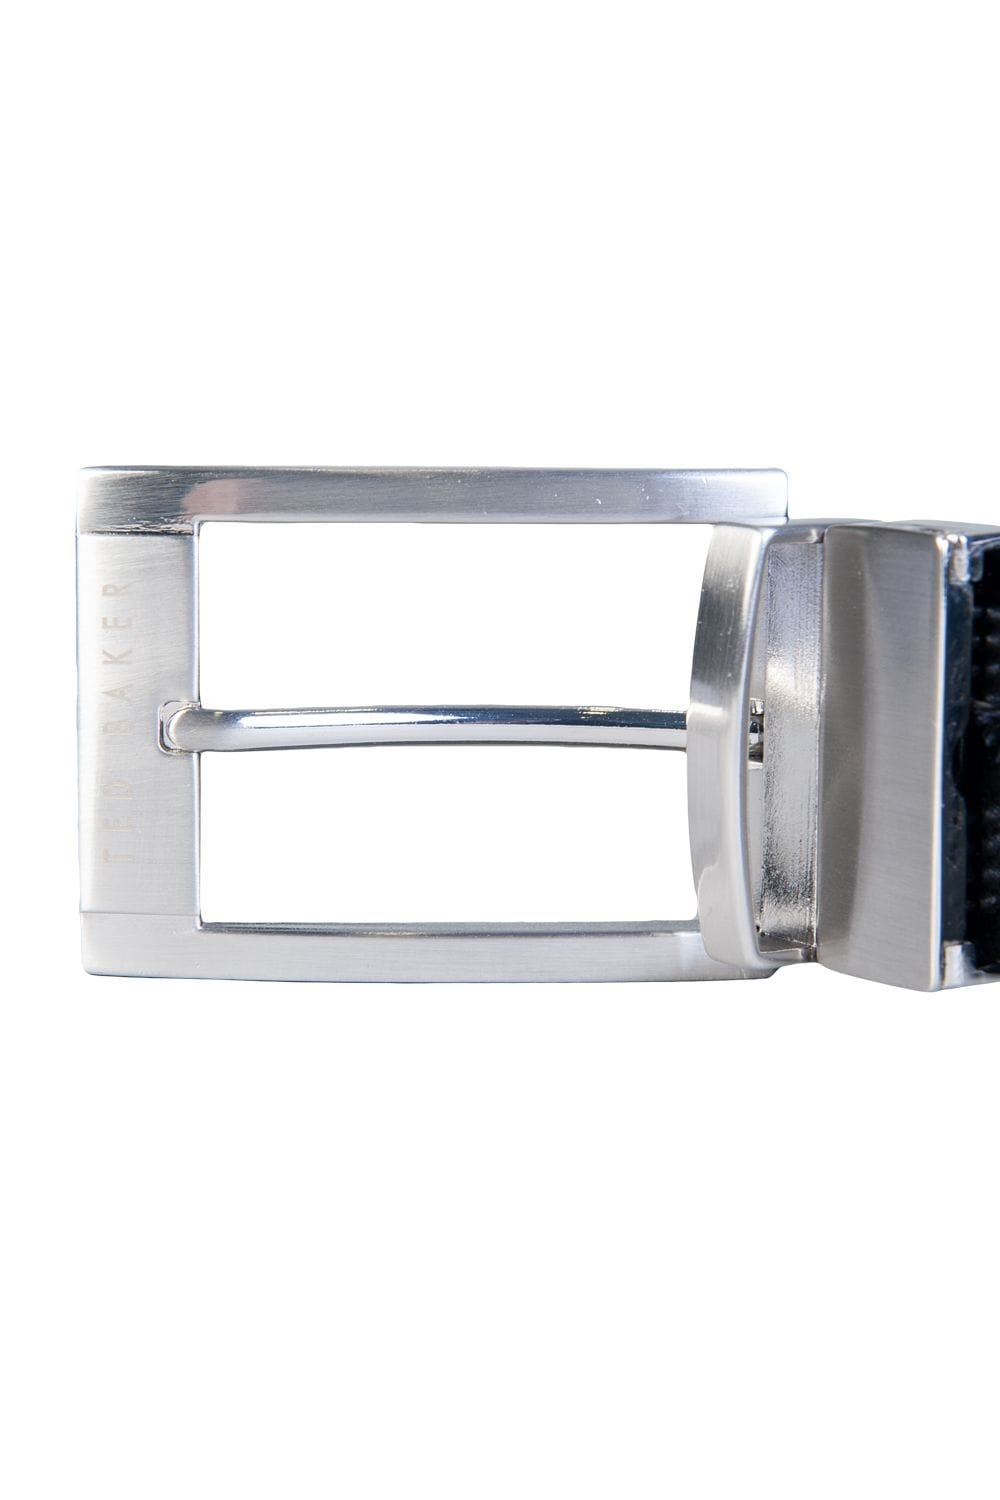 e5b69faa3865 Ted Baker Belt Reversible with 2 Buckles MXG-HOLLT - Accessories ...